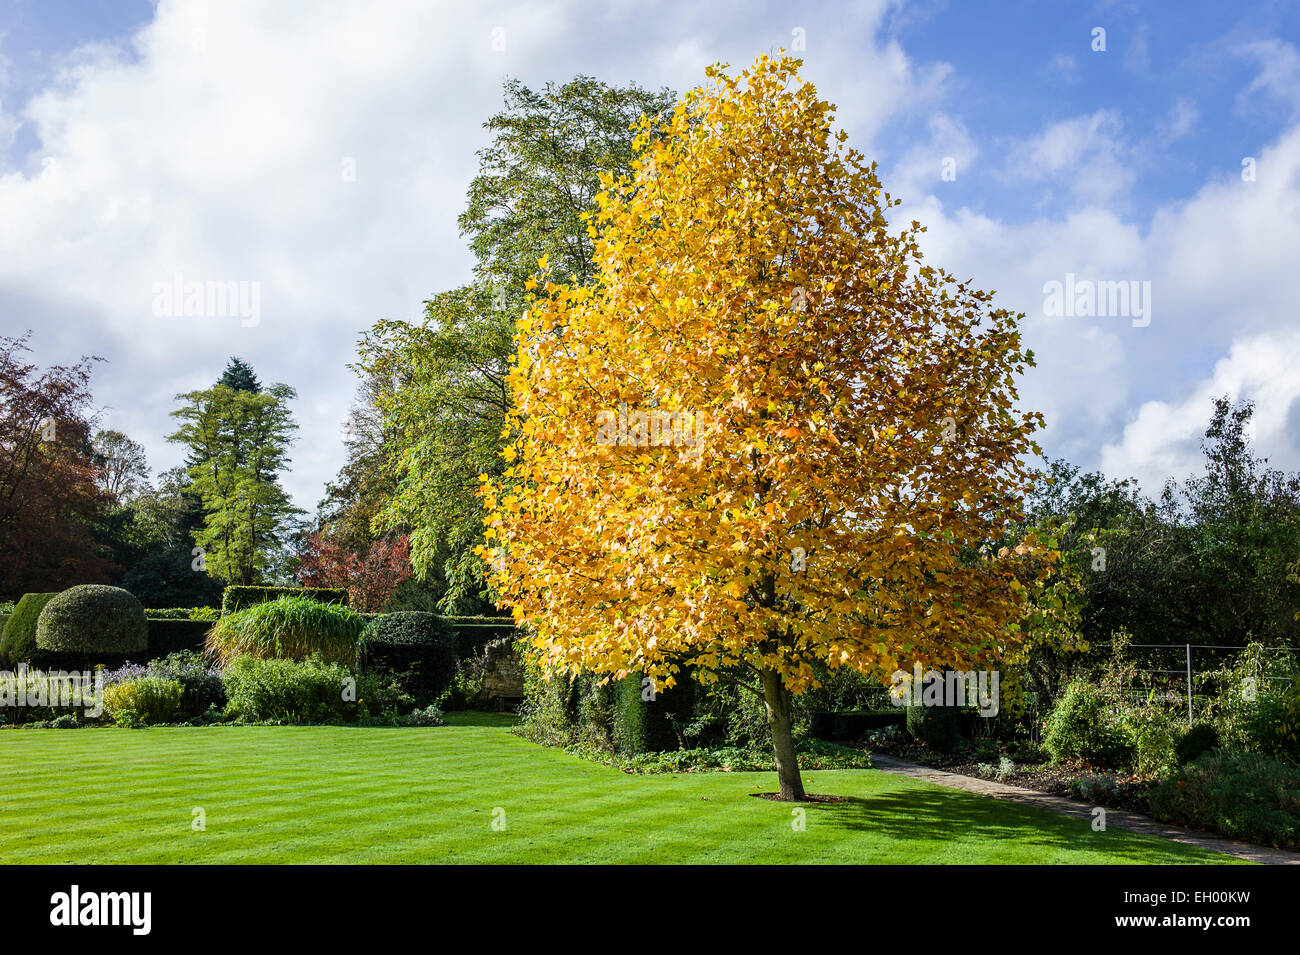 Tulip Tree In Autumn Colours In Uk Stock Photo 79291181 Alamy